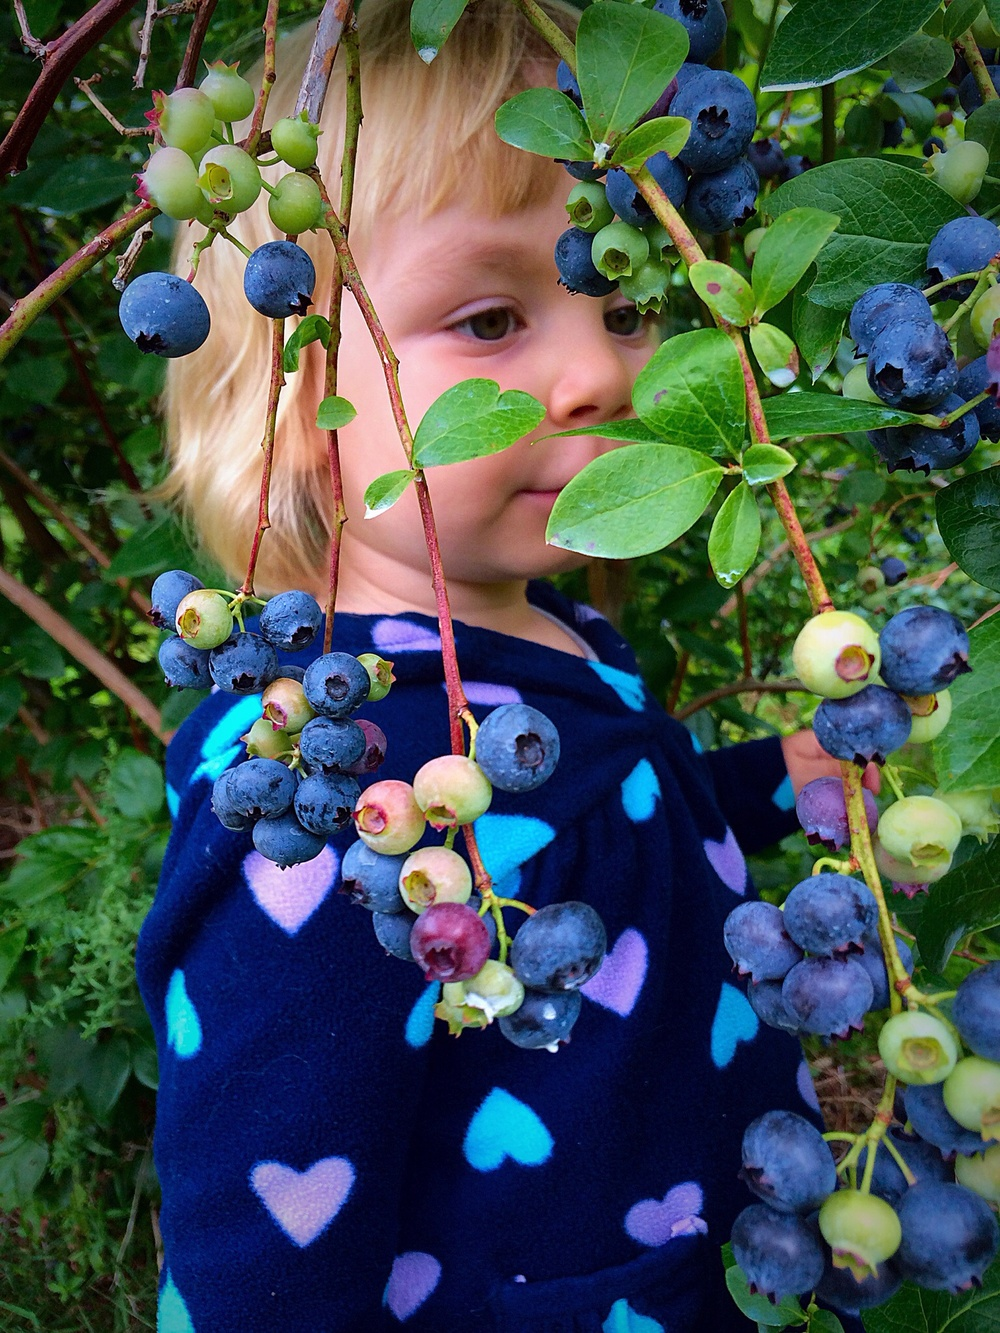 Blueberry camouflage